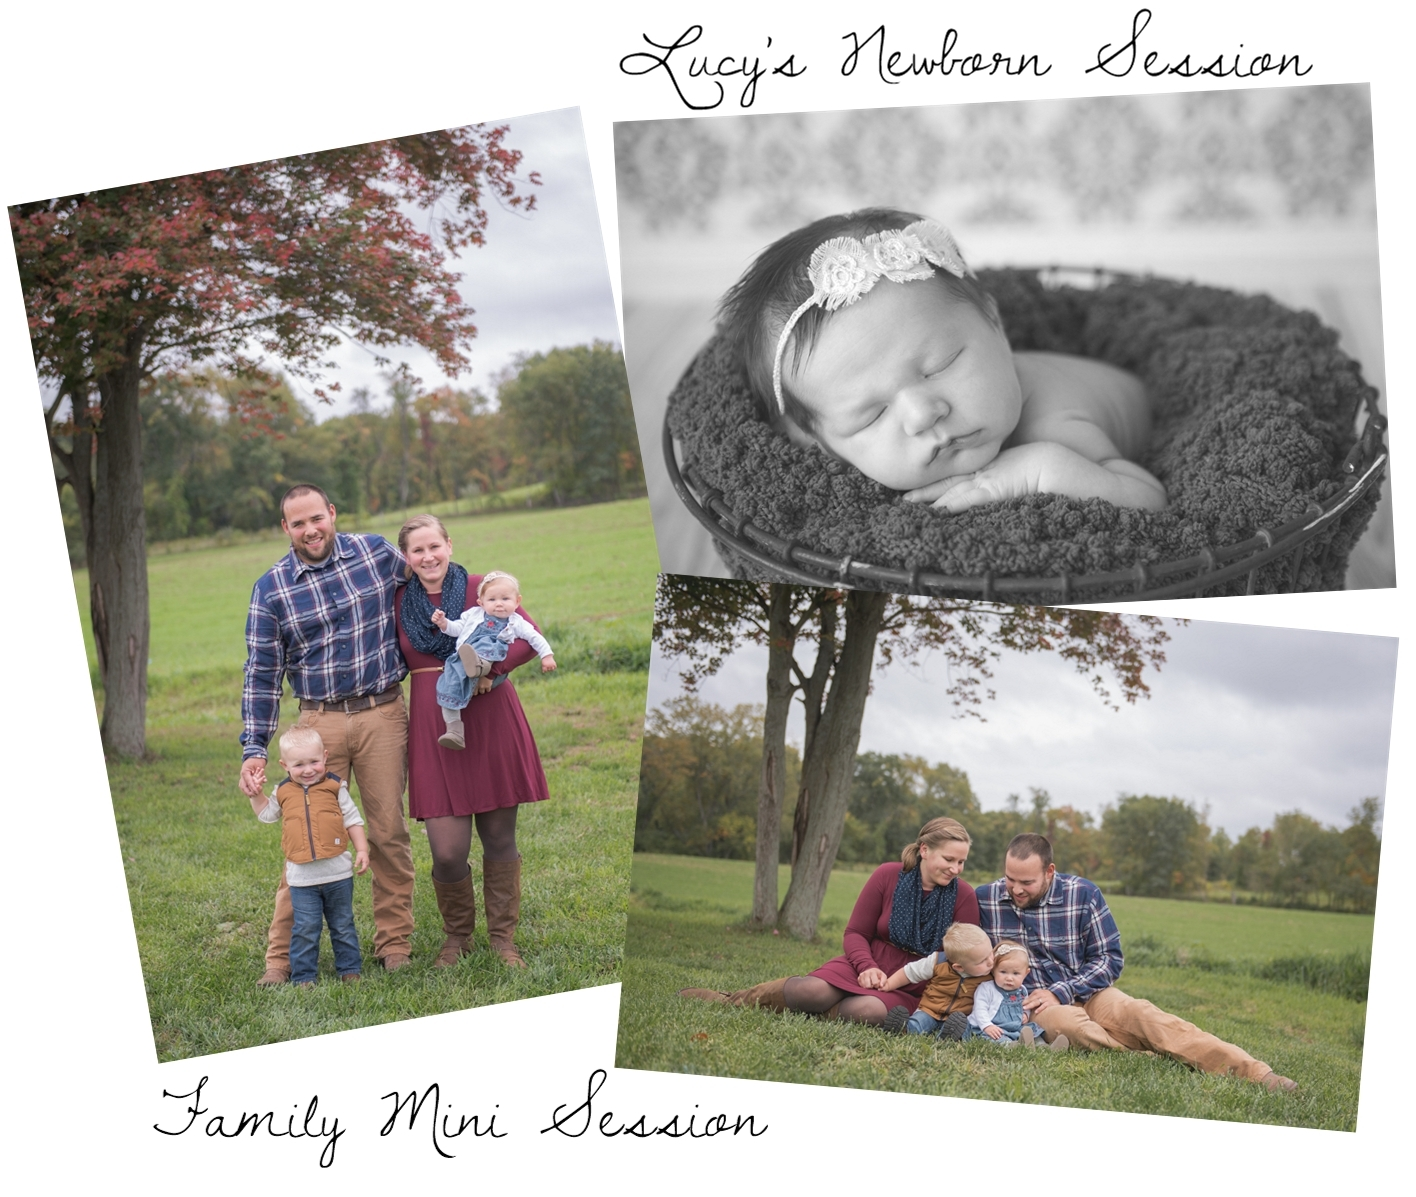 The Avery Family & Newborn Session